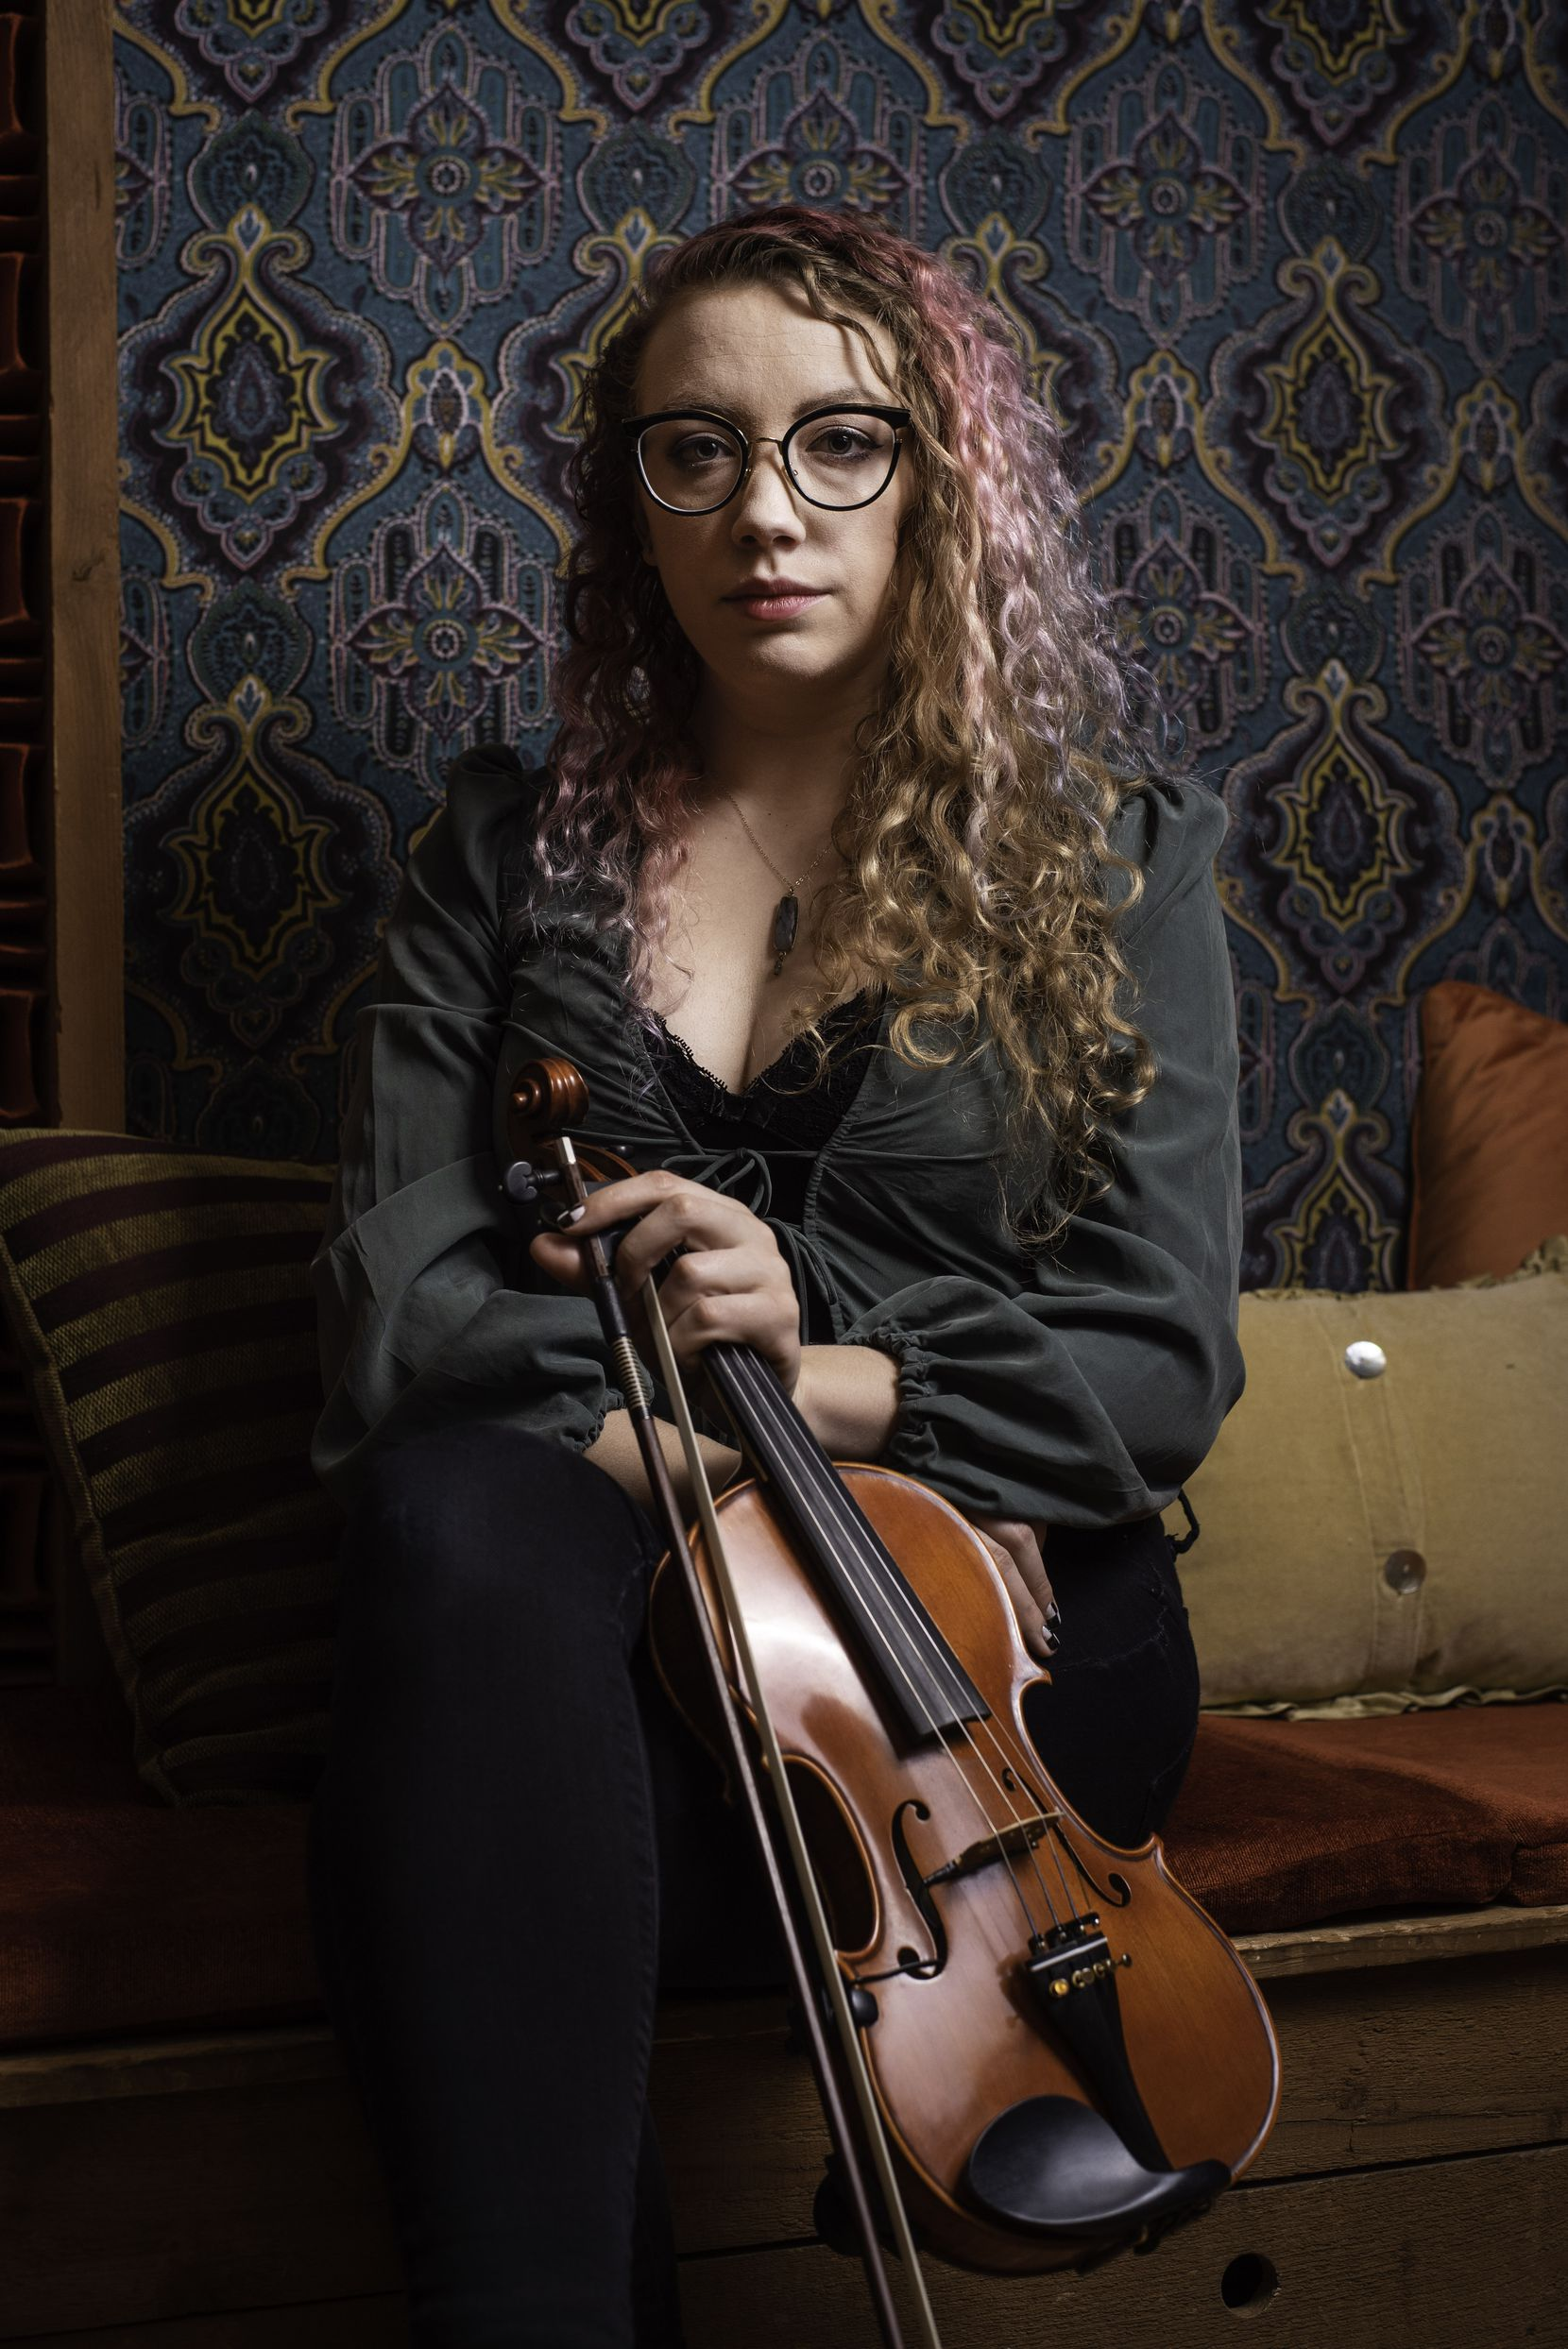 Musician Scarlett Deering, 29, at Acoustic Kitchen Recording Studio in Dallas, Tuesday, March 17, 2020.